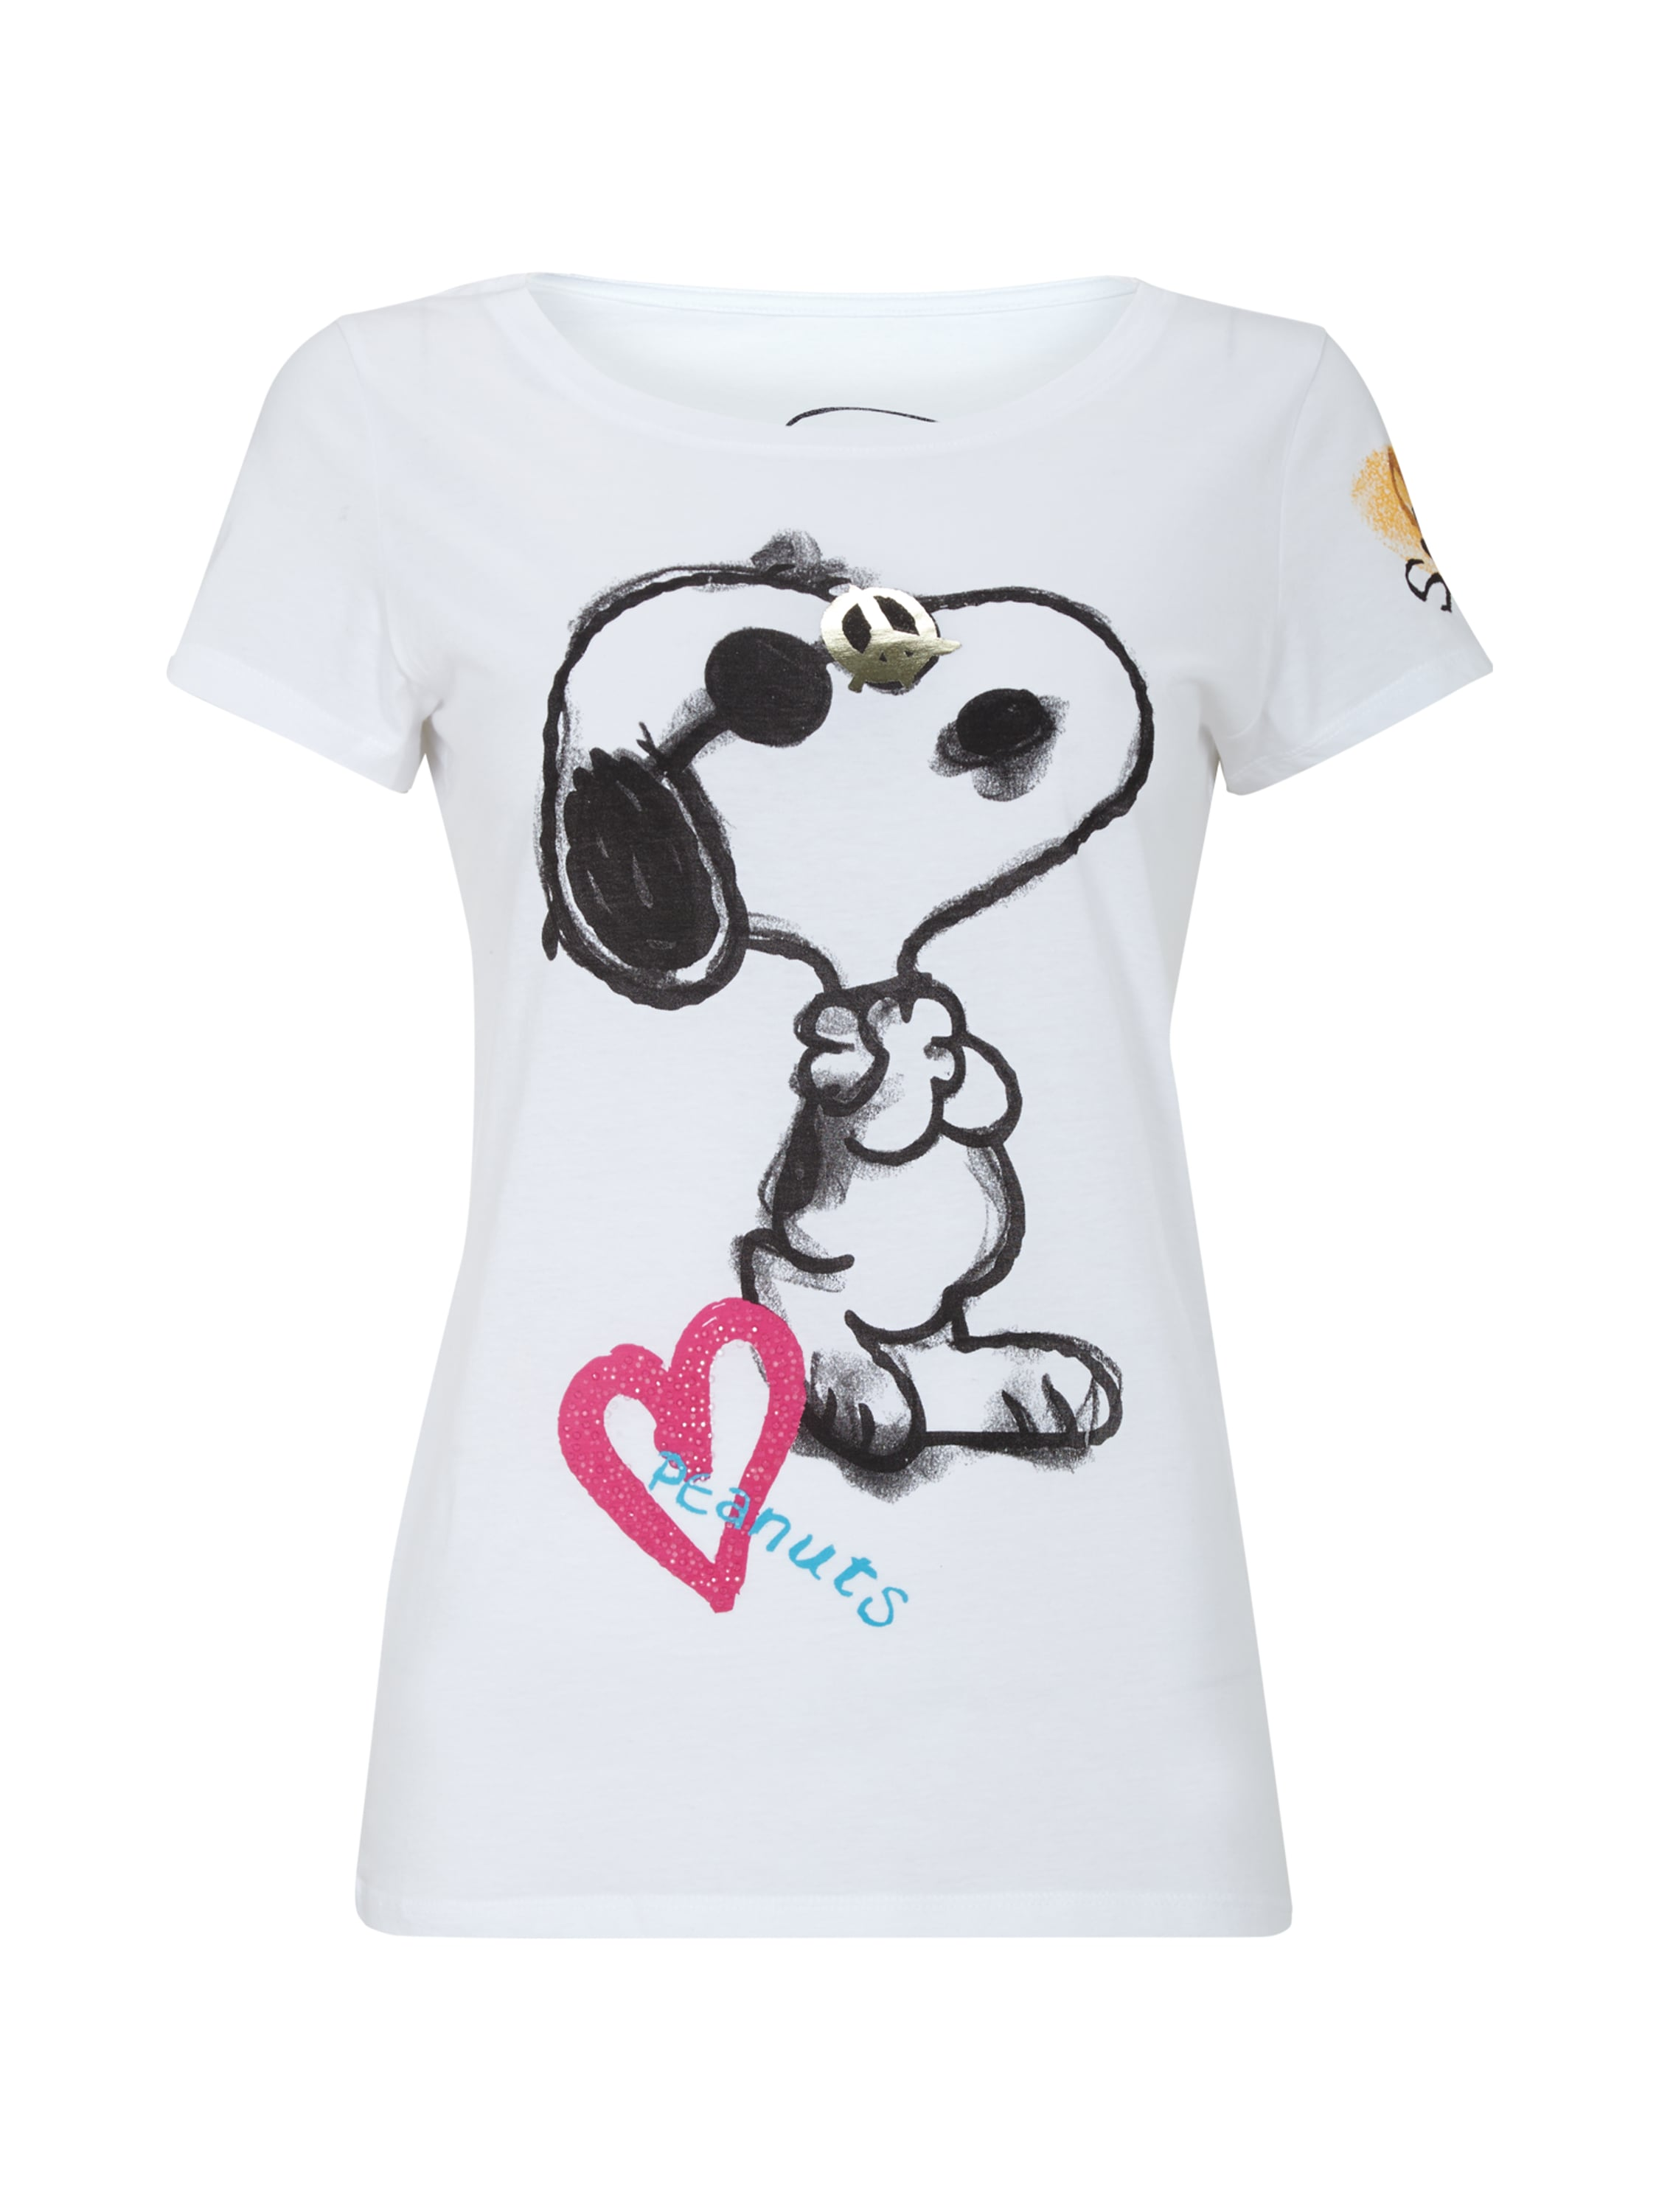 shirt mit snoopy print fashion id online shop. Black Bedroom Furniture Sets. Home Design Ideas